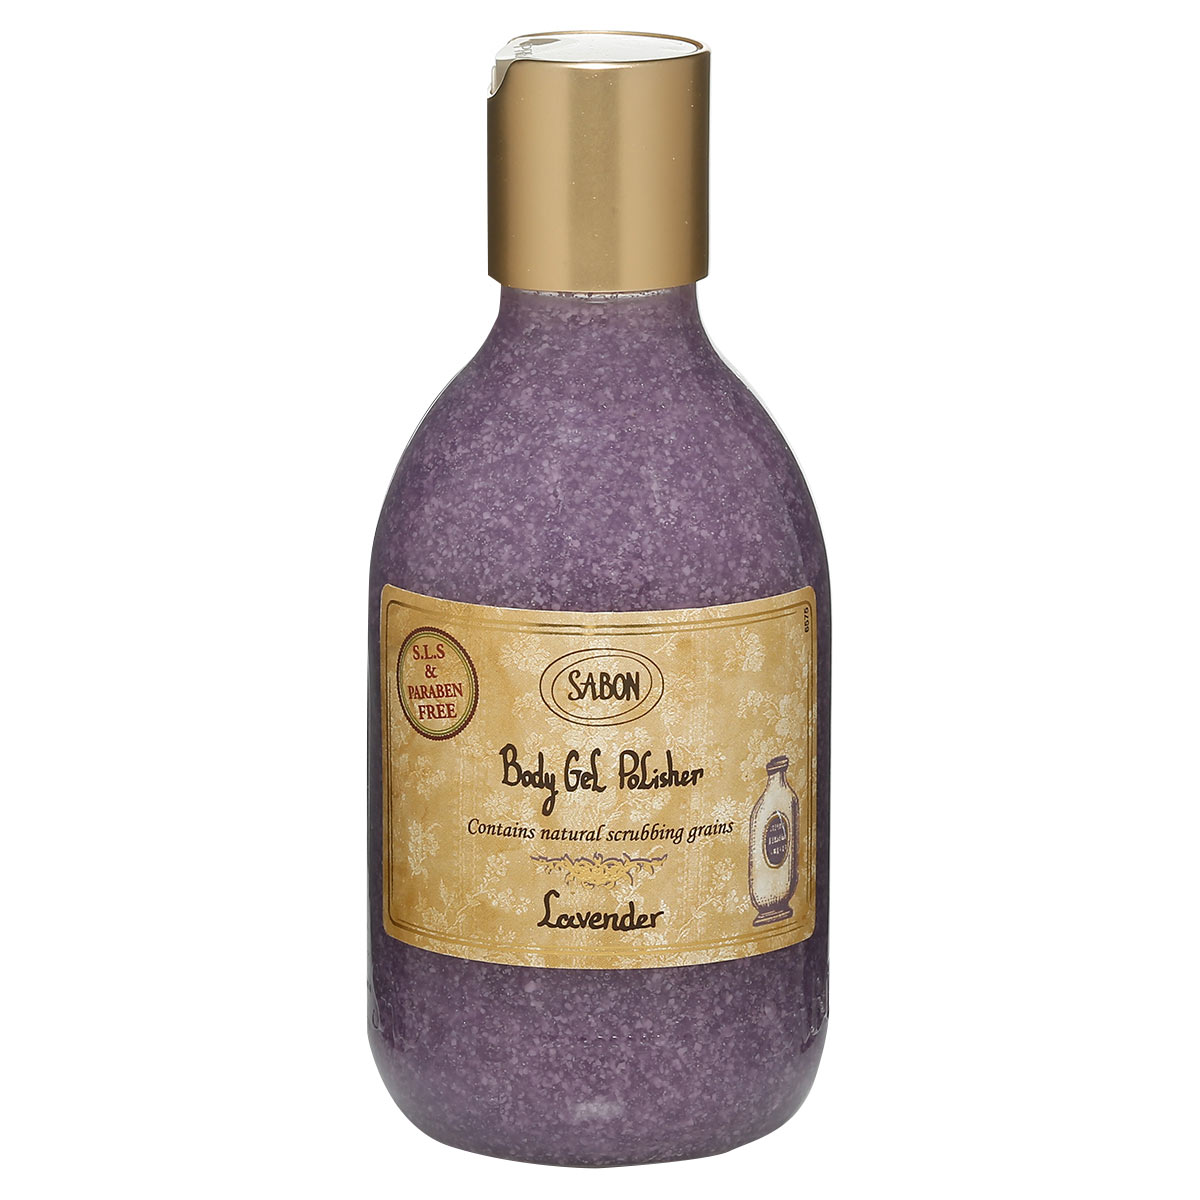 Body Gel Polisher - Lavender